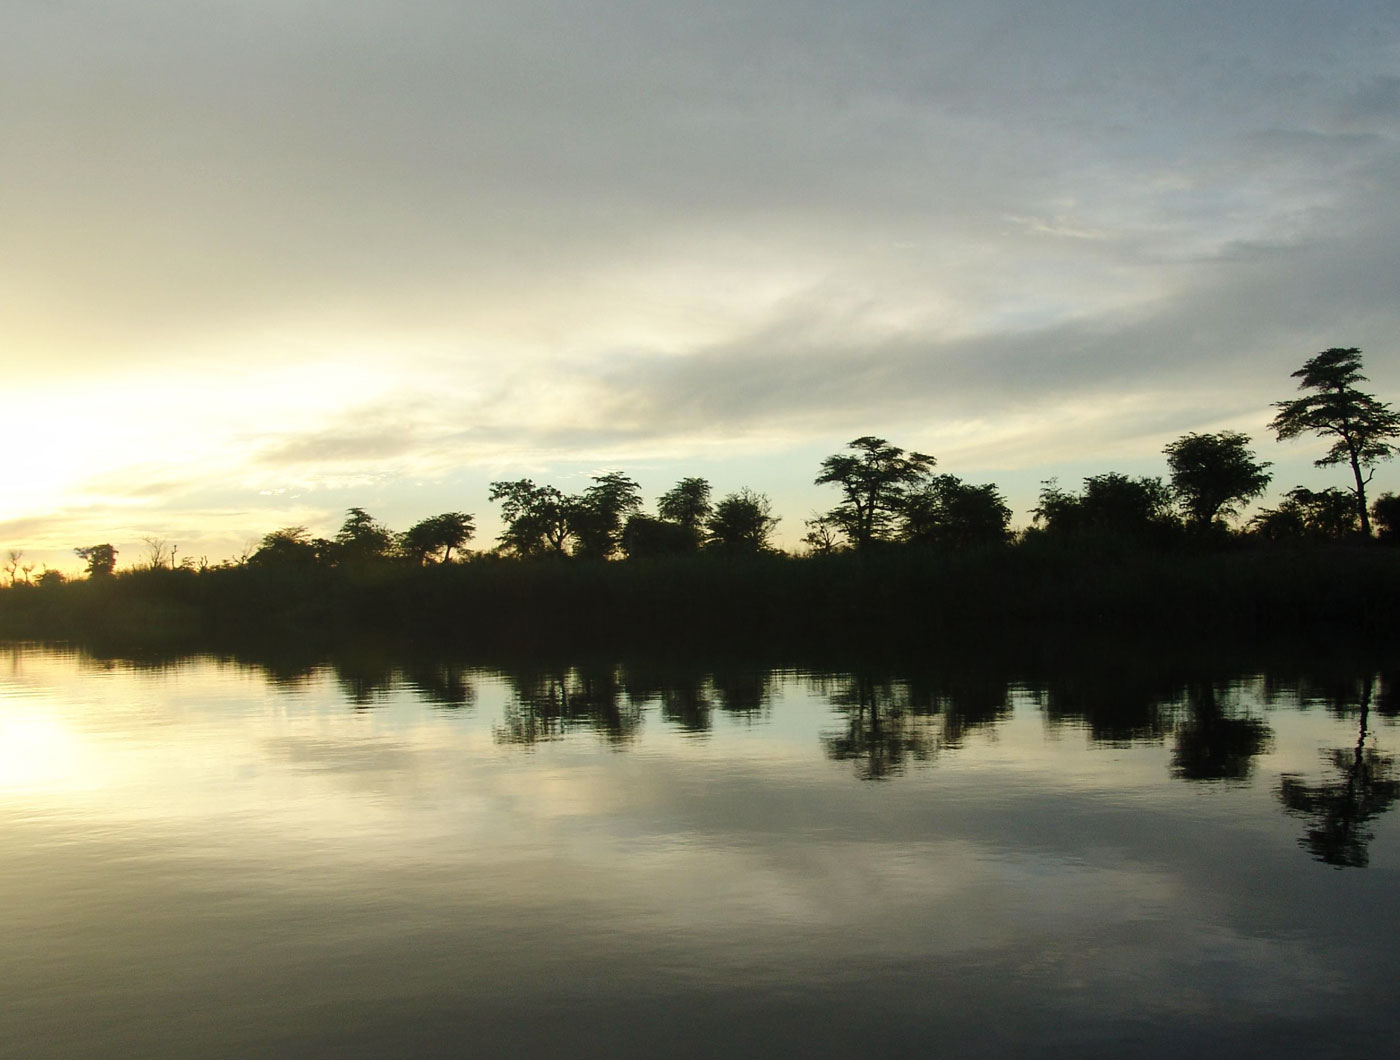 Kavango/Caprivi/North-East